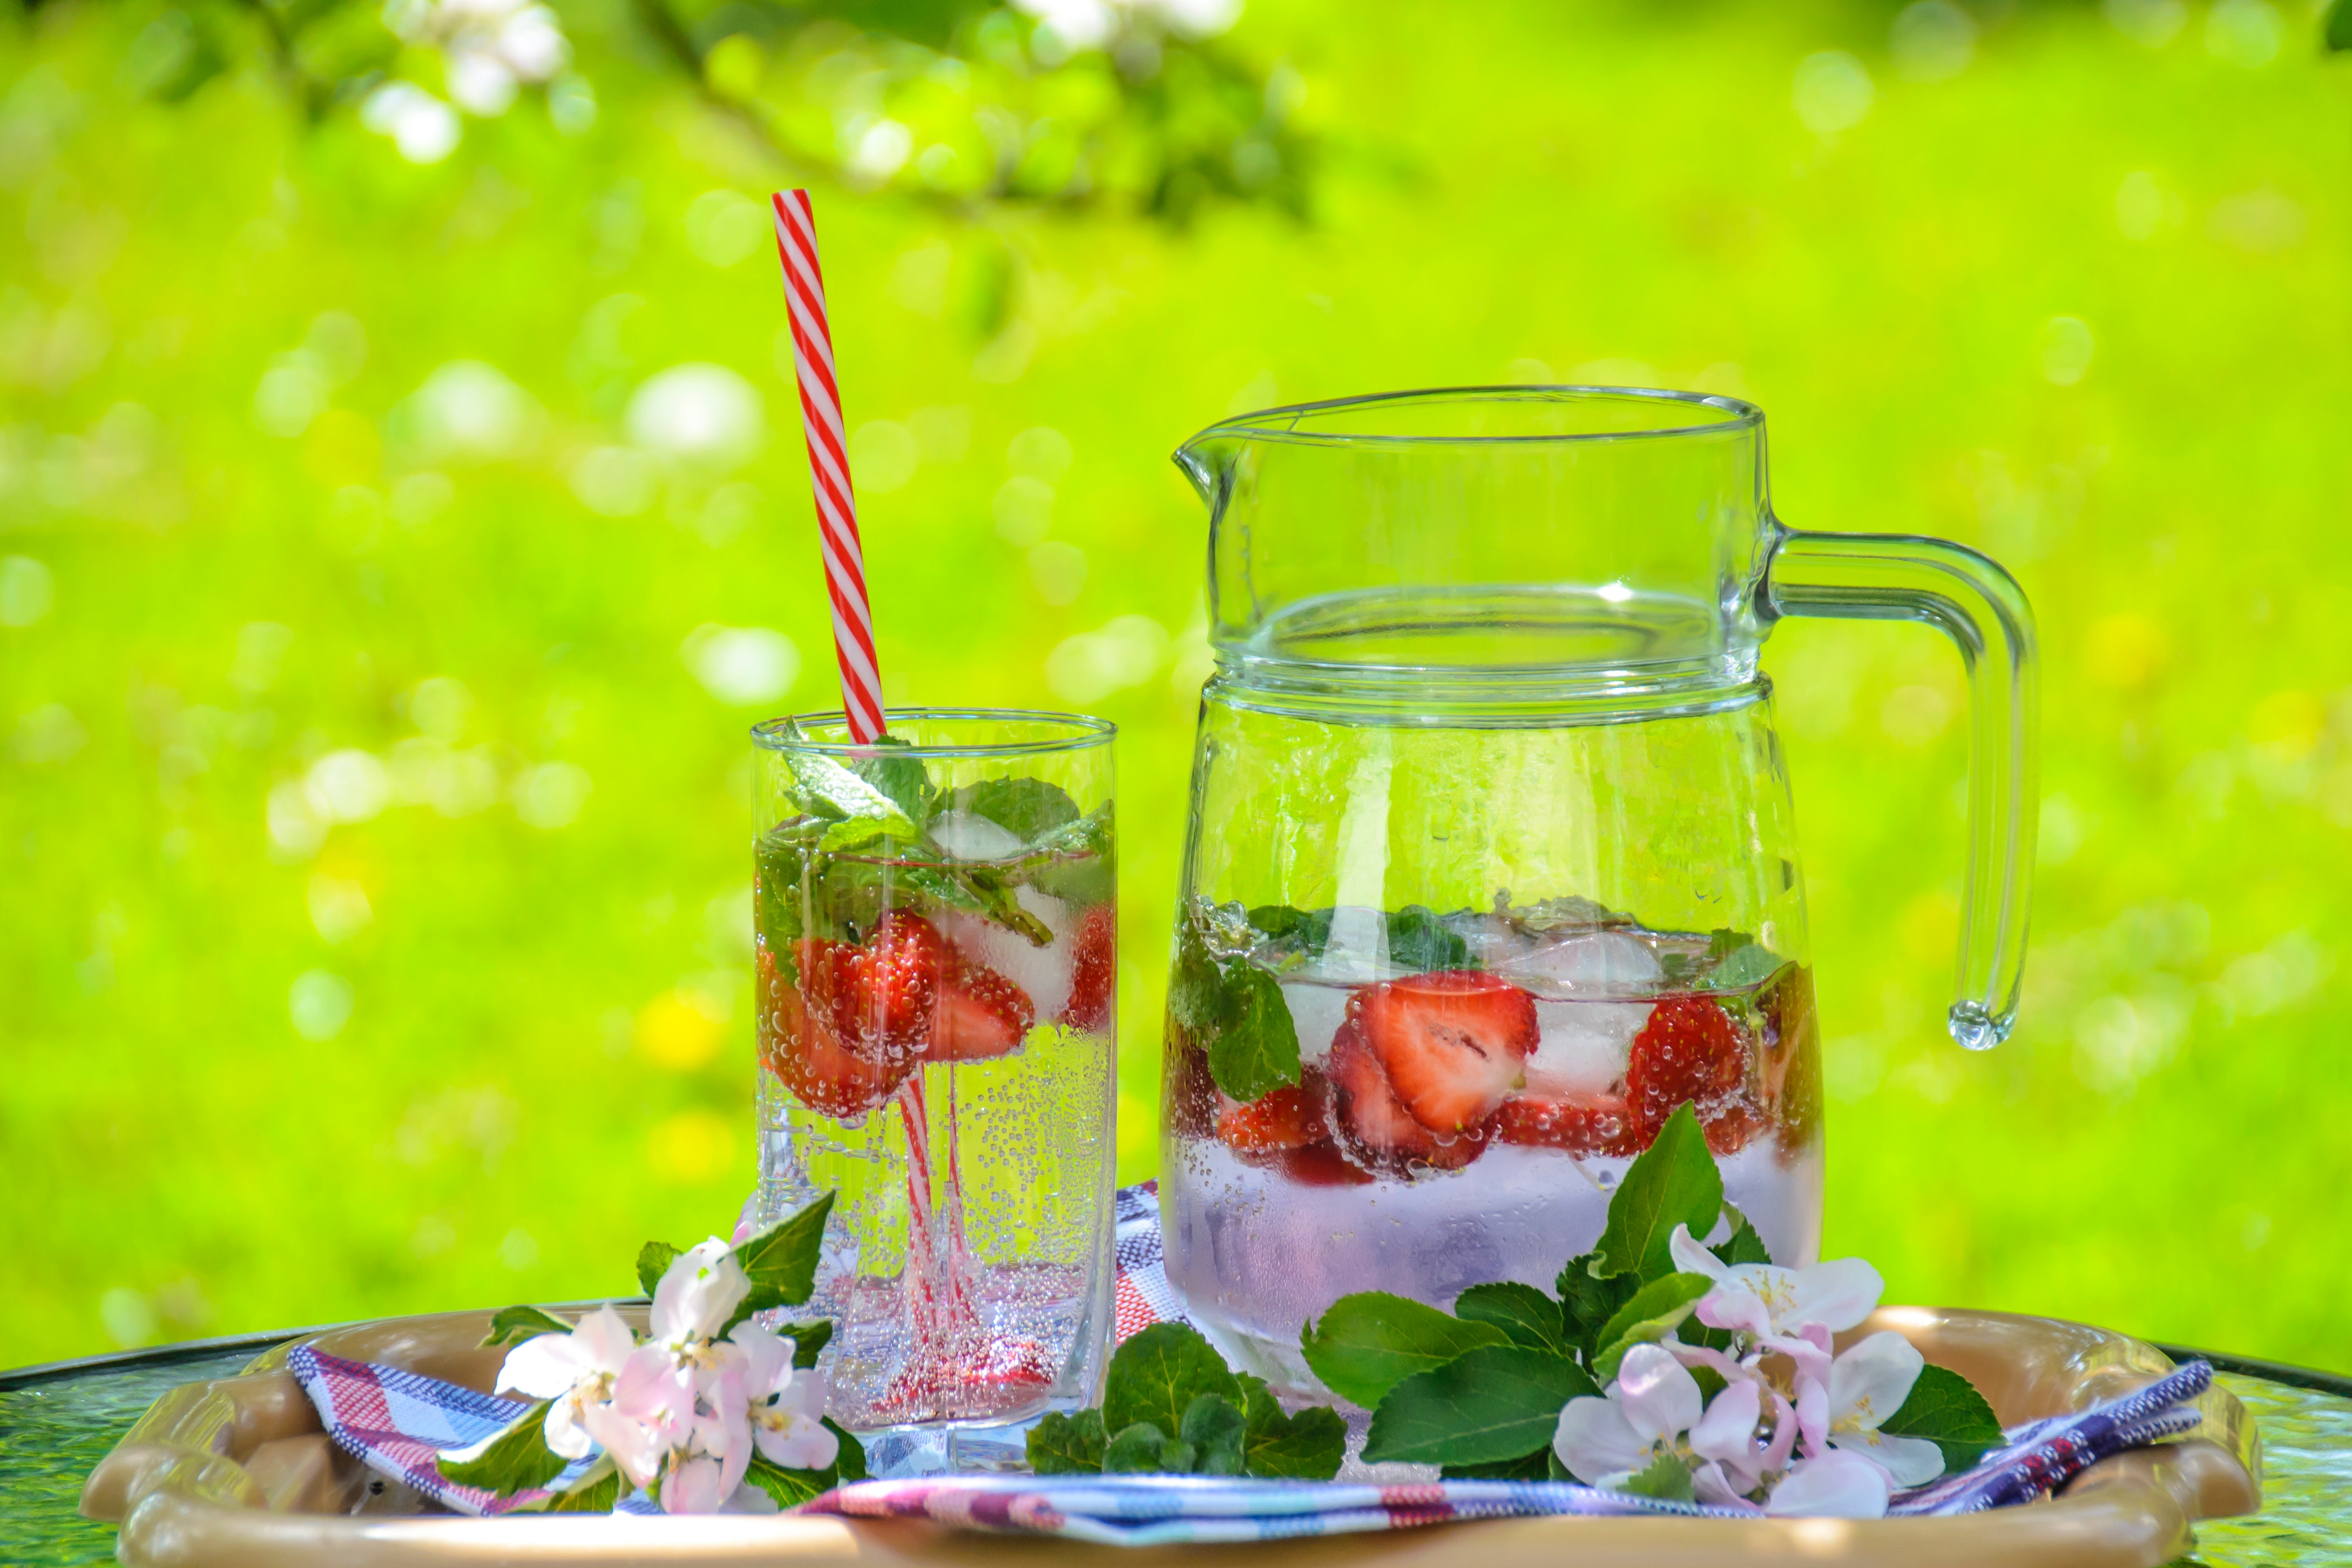 Clear glass pitcher with water and strawberry photo